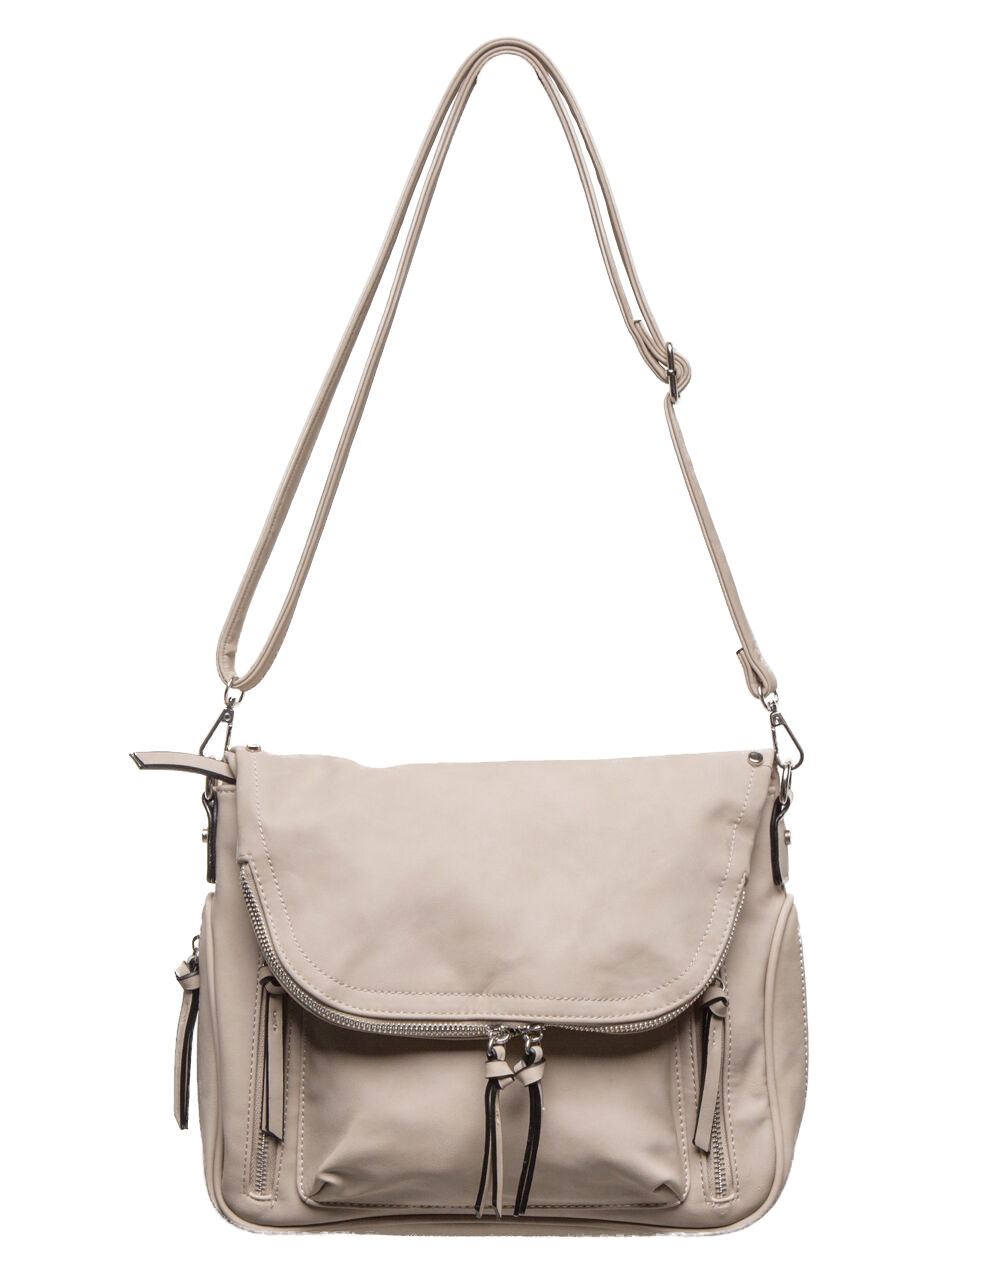 VIOLET RAY FOLDOVER LIGHT GREY CROSSBODY BAG